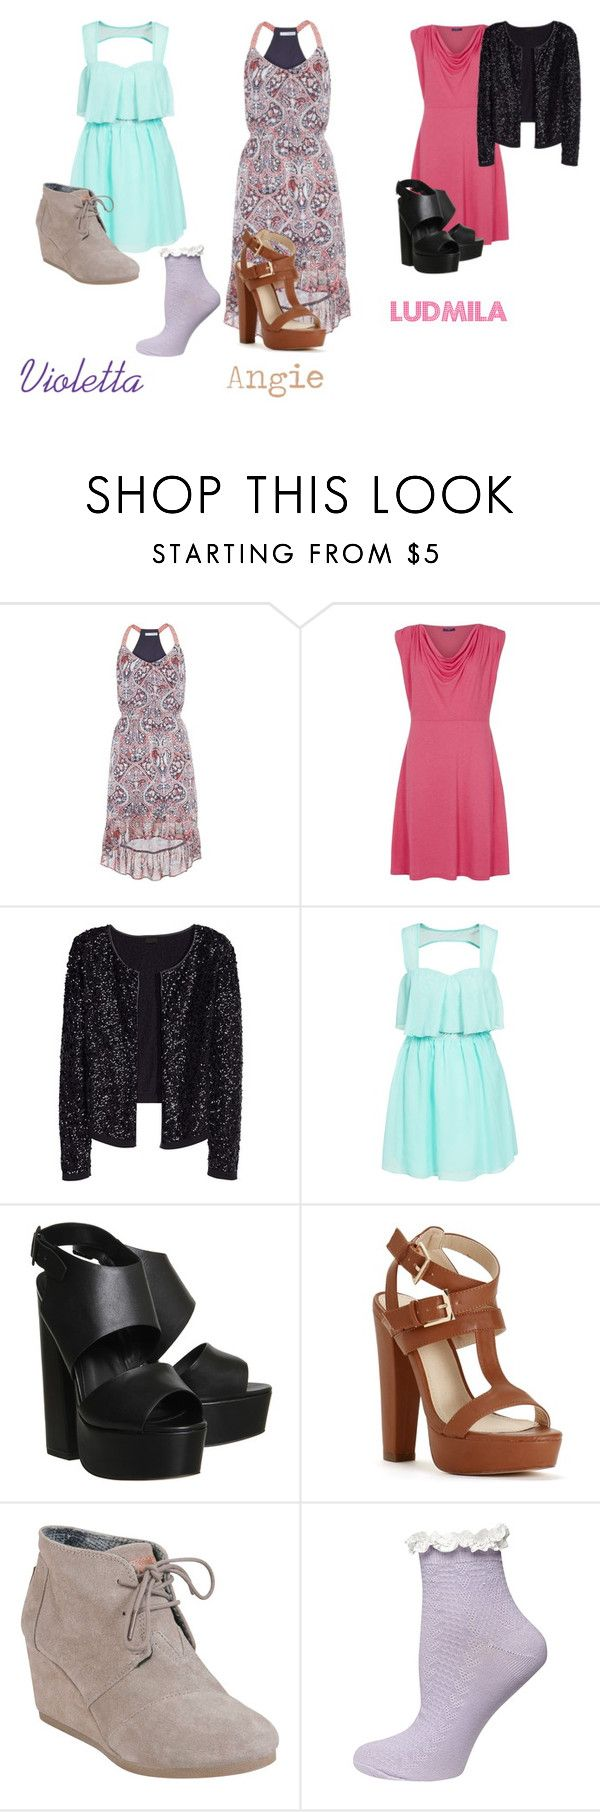 """Dress: Violetta, Angie and Ludmila"" by idapolyvore ❤ liked on Polyvore featuring maurices, HotSquash, Oneness, Office, TOMS, Dorothy Perkins, women's clothing, women, female and woman"